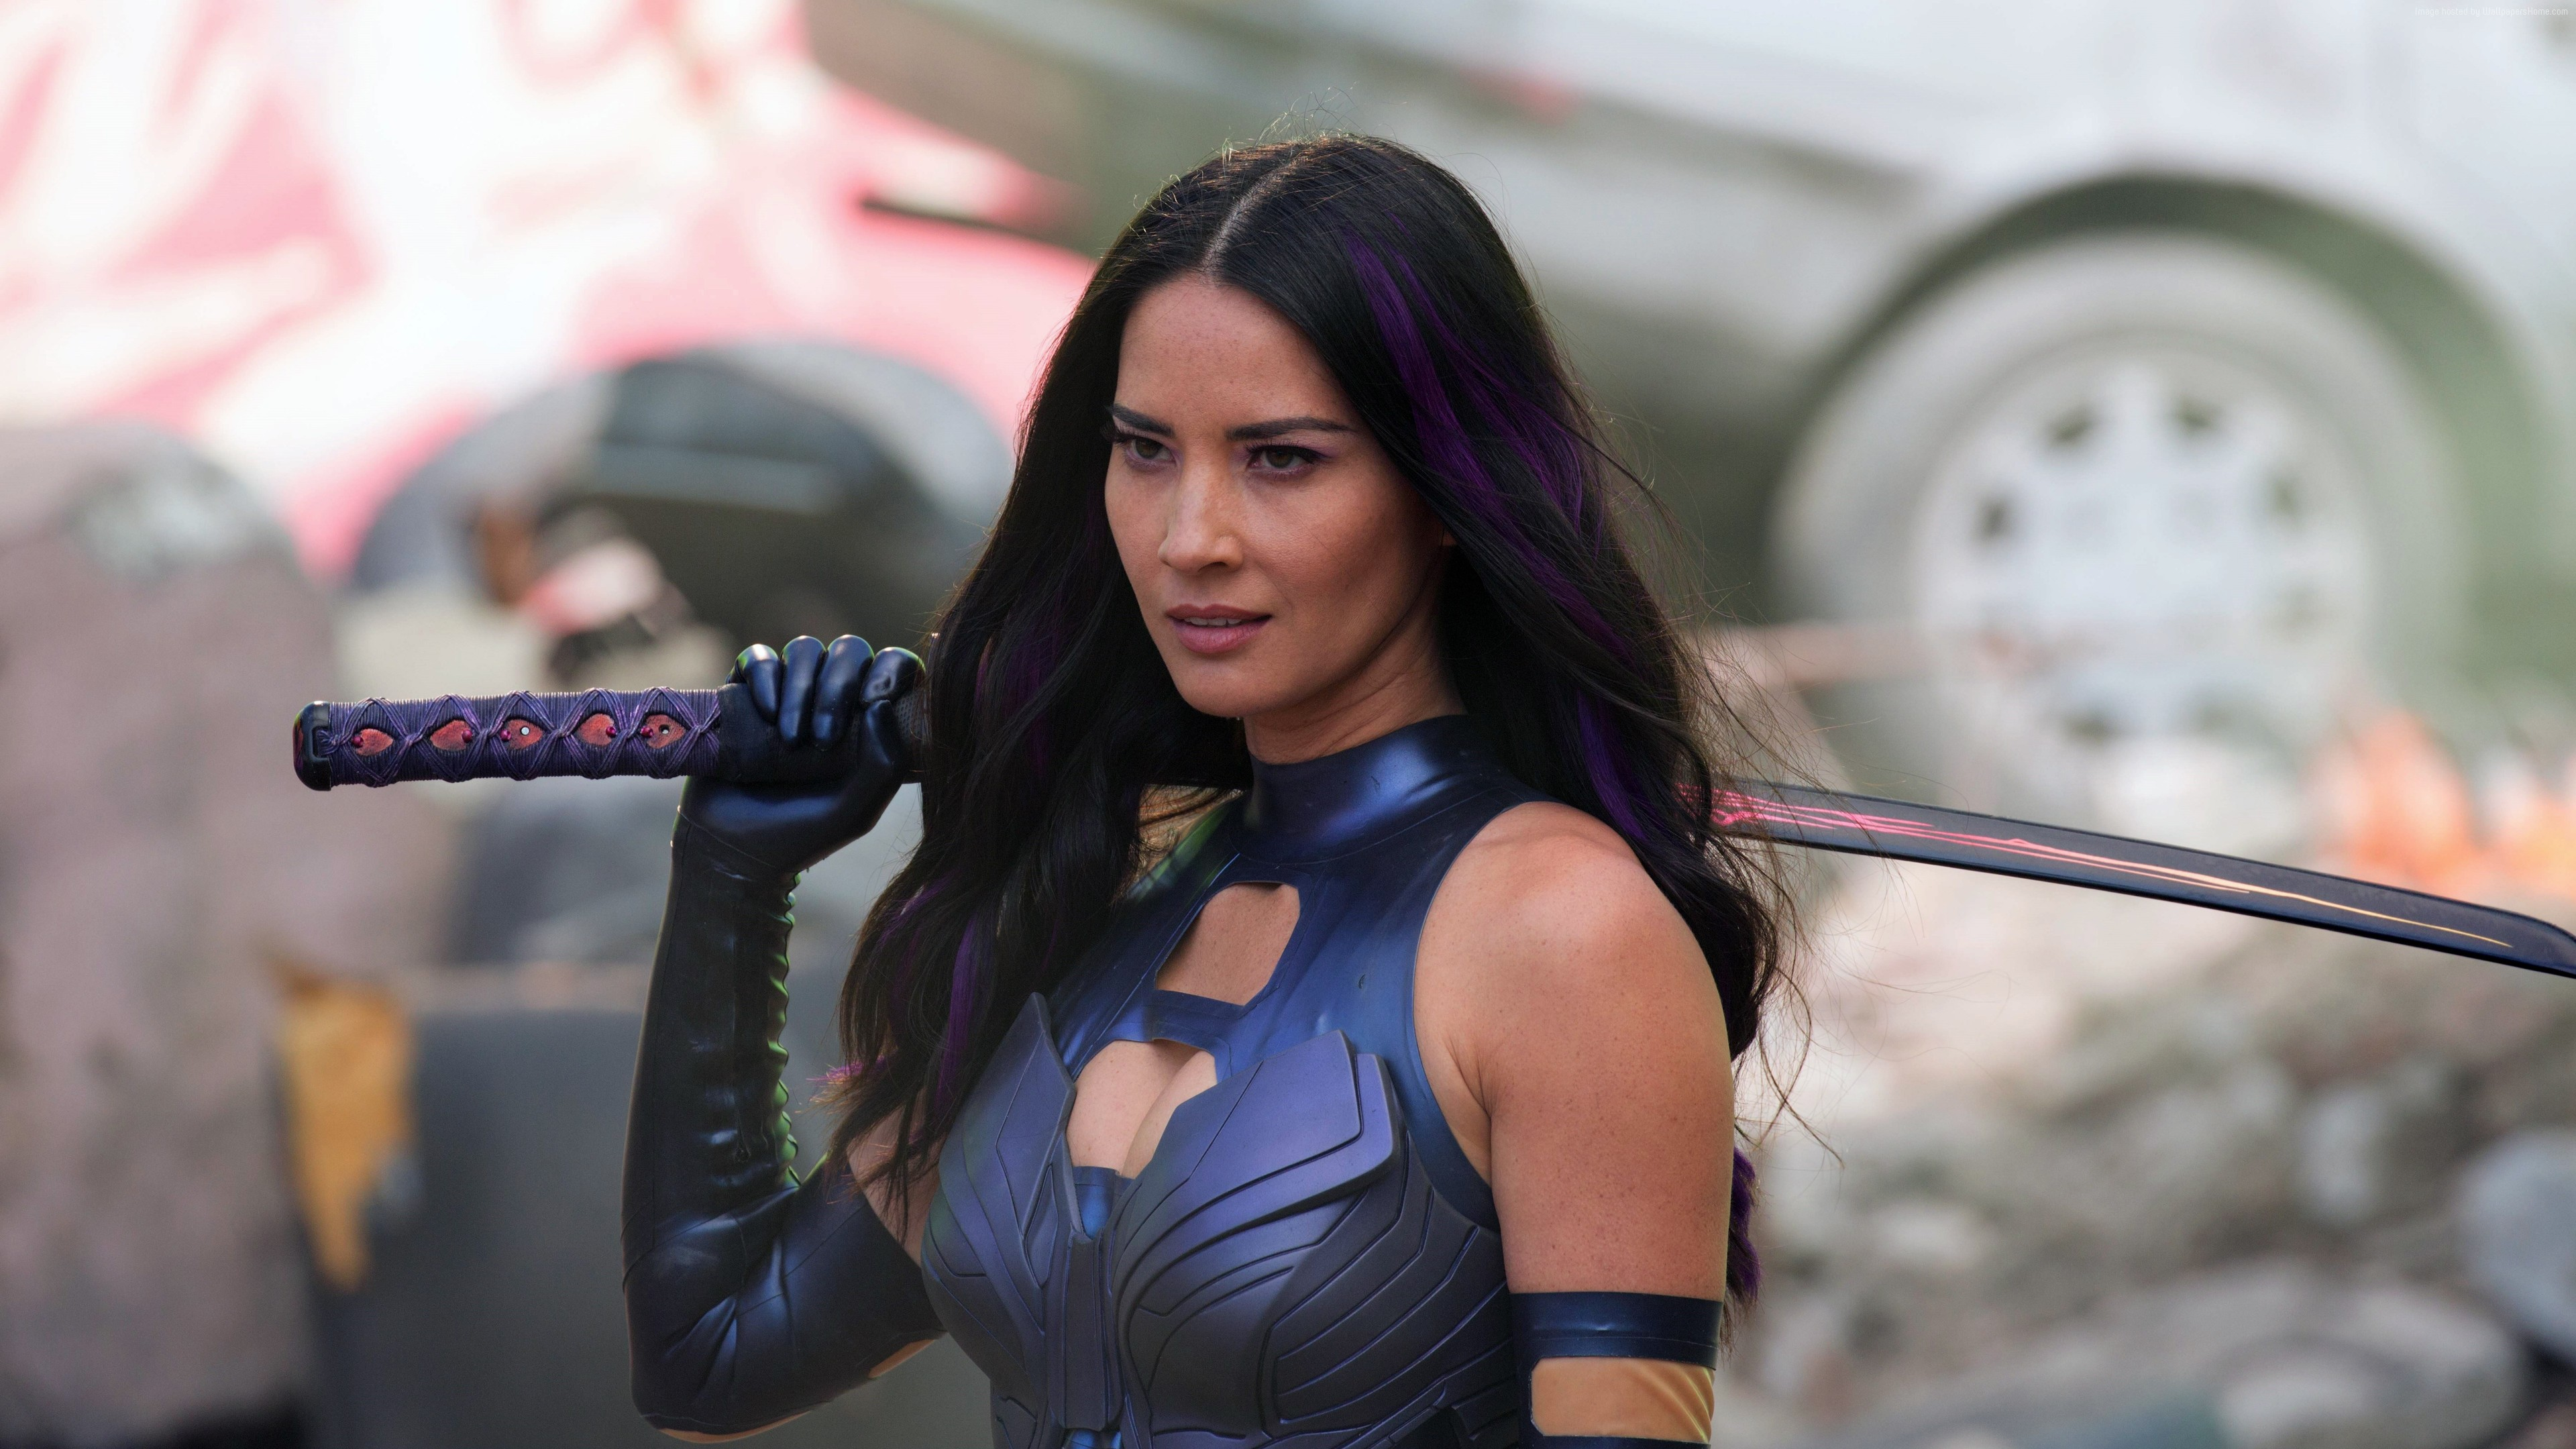 olivia munn in x men apocalypse 1536363842 - Olivia Munn in X Men Apocalypse - x men apocalypse wallpapers, olivia munn wallpapers, movies wallpapers, 2016 movies wallpapers